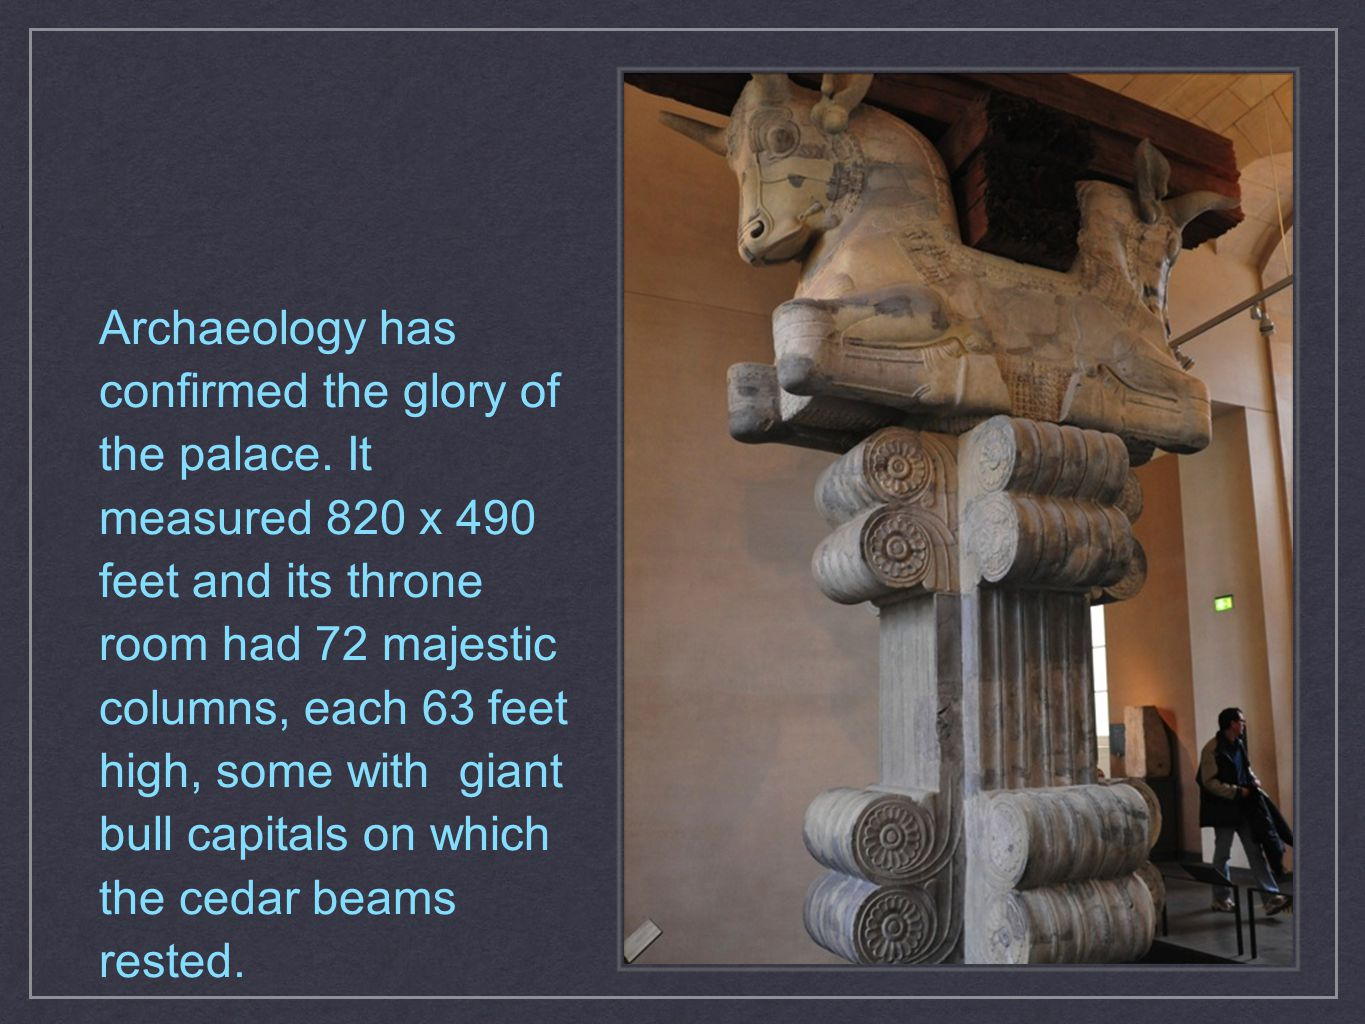 Archaeology has confirmed the glory of the palace. It measured 820 x 490 feet and its throne room had 72 majestic columns, each 63 feet high, some wit